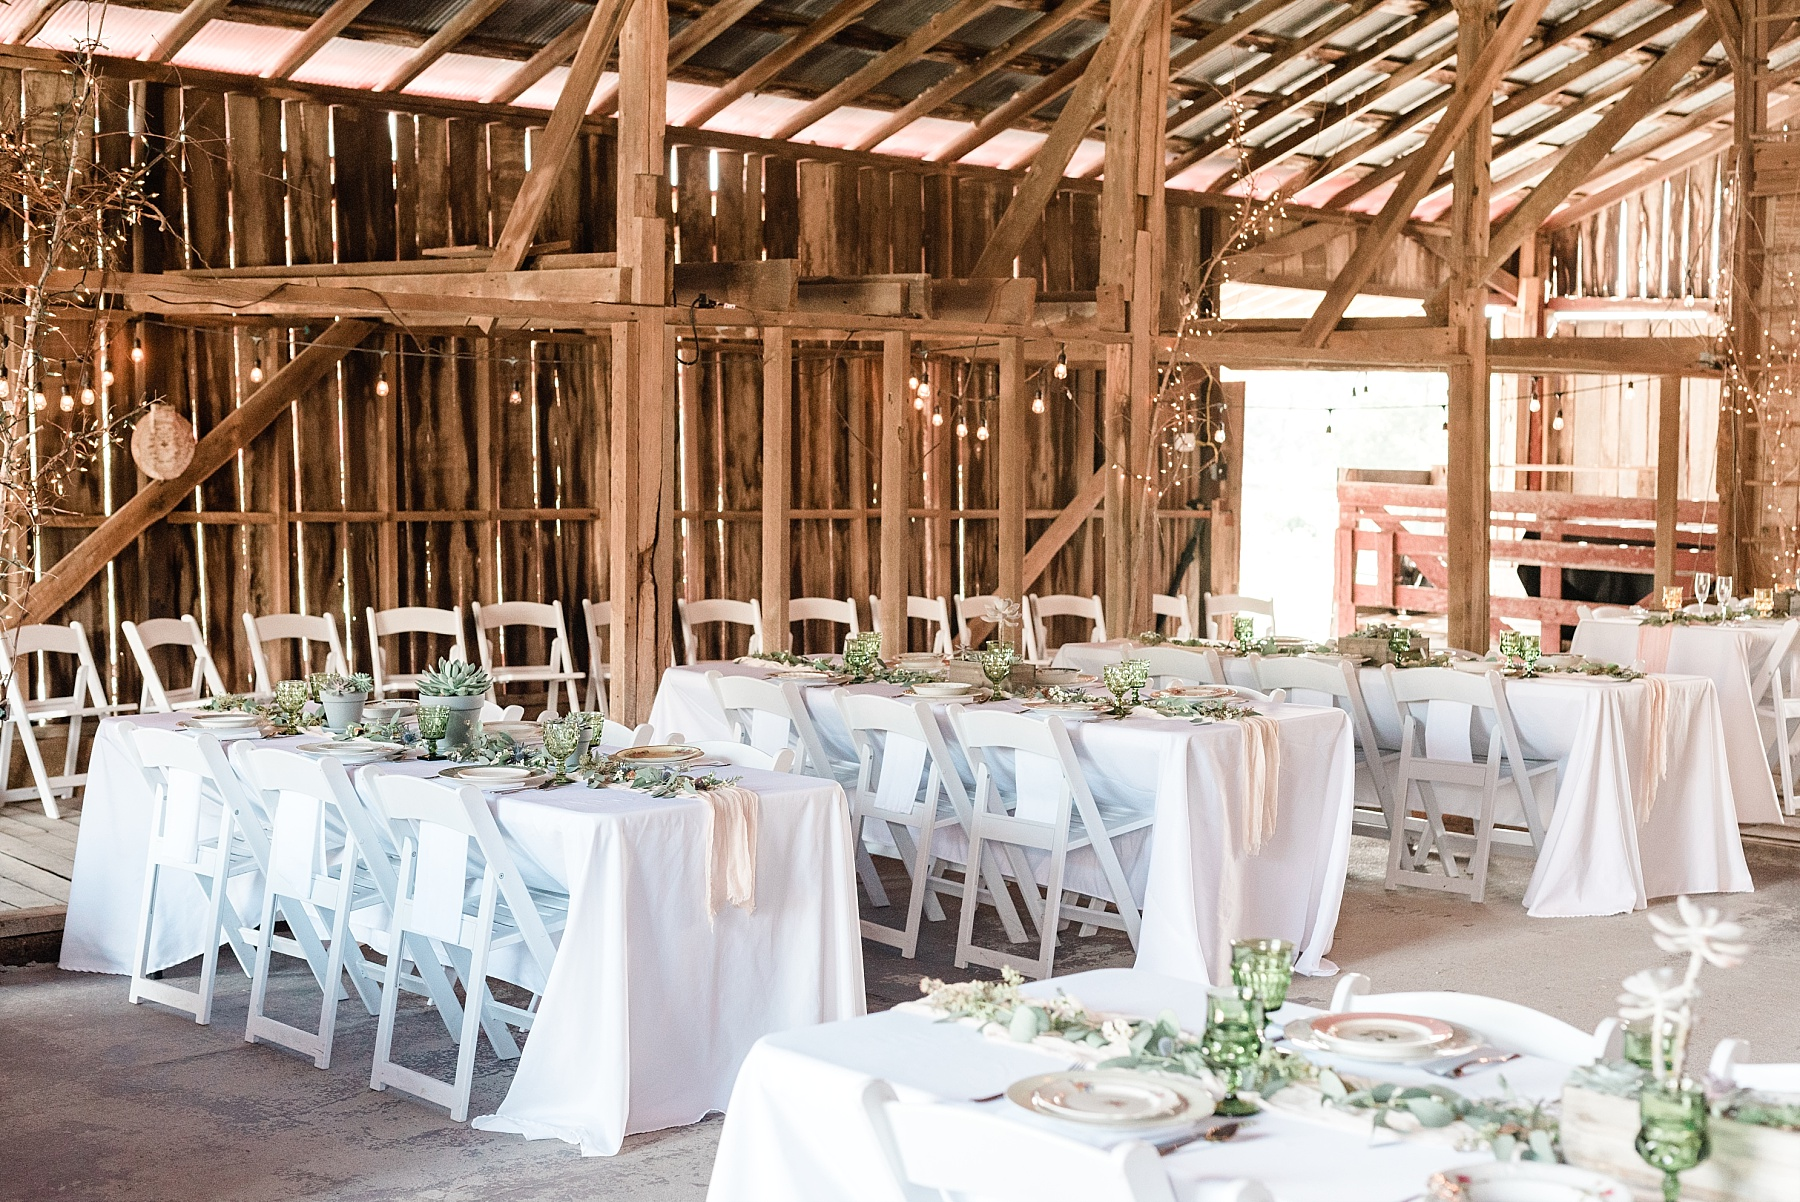 Fine Art Sunset Themed Wedding in Autumn at Dodson Orchards by Kelsi Kliethermes Photography_0009.jpg